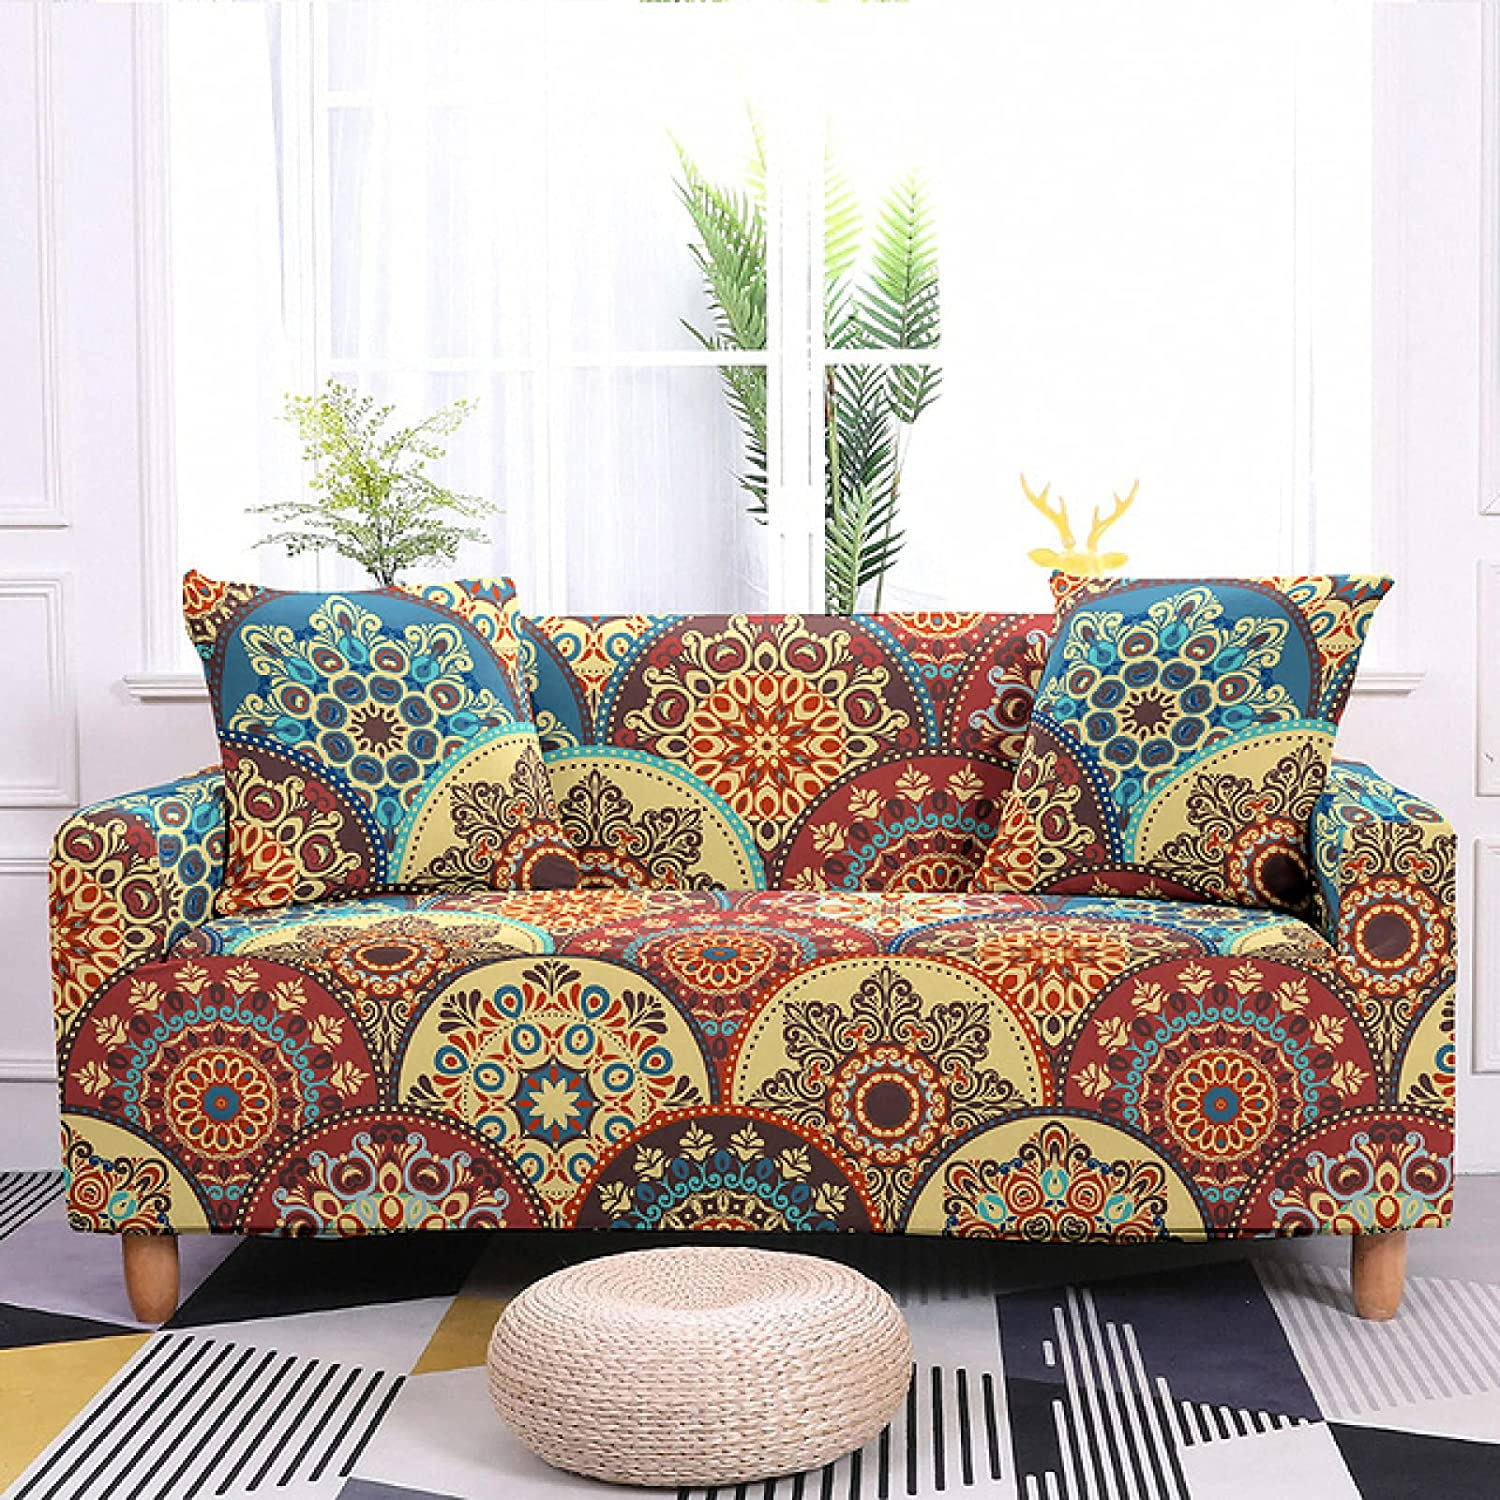 ZHOUMOLIN Sofa Large discharge sale Decor Elastic Cover Room Living Stretch for Clearance SALE! Limited time!